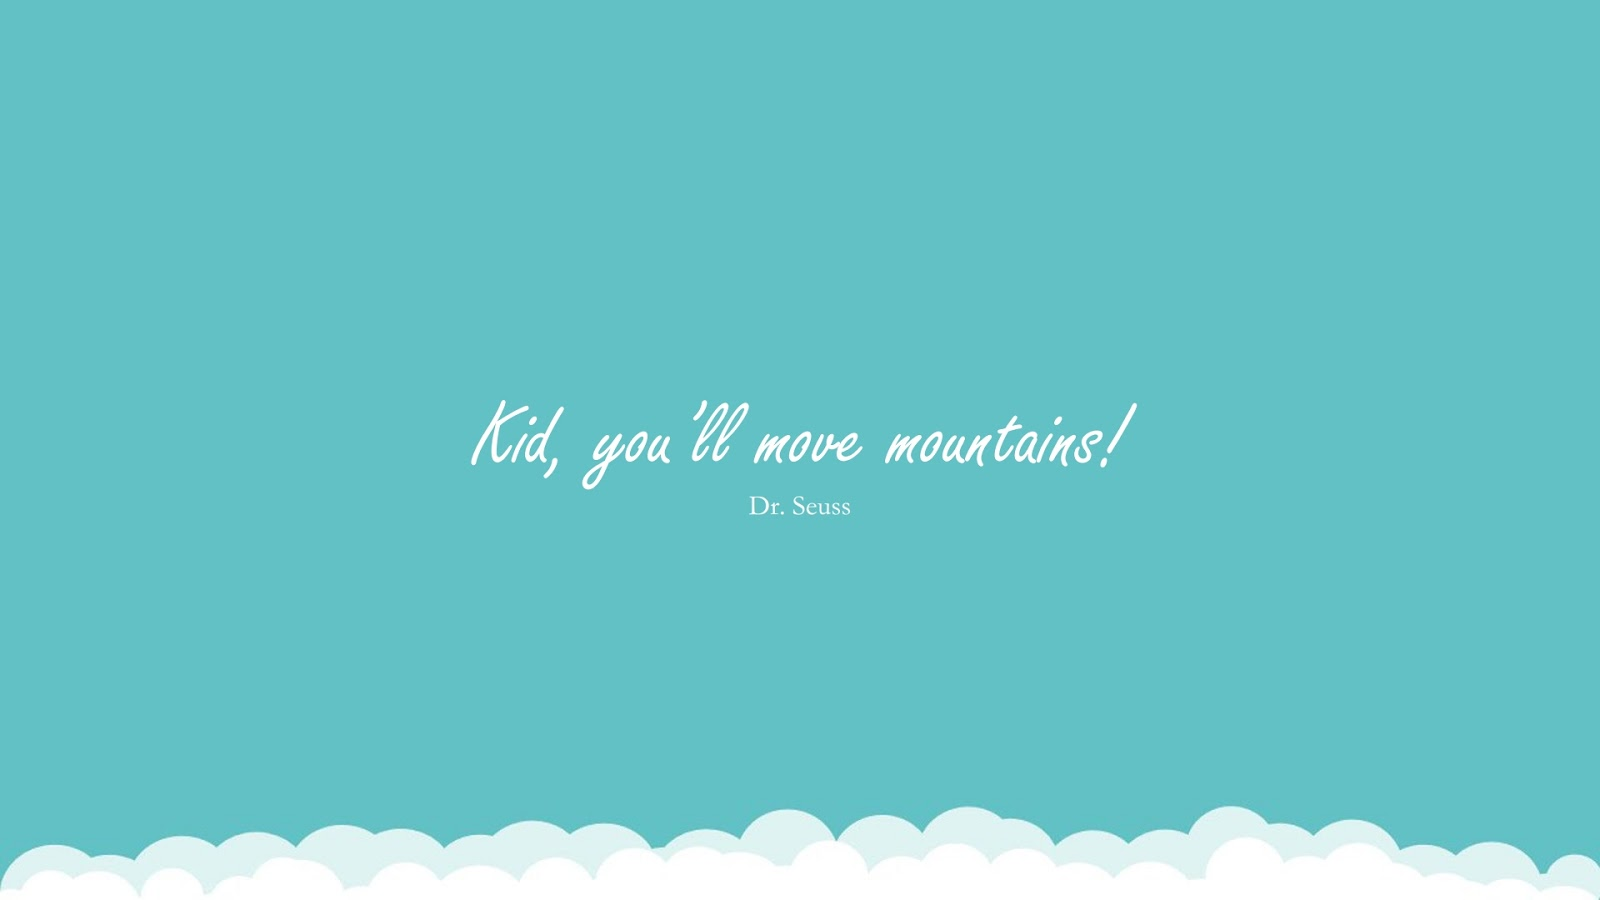 Kid, you'll move mountains! (Dr. Seuss);  #HopeQuotes